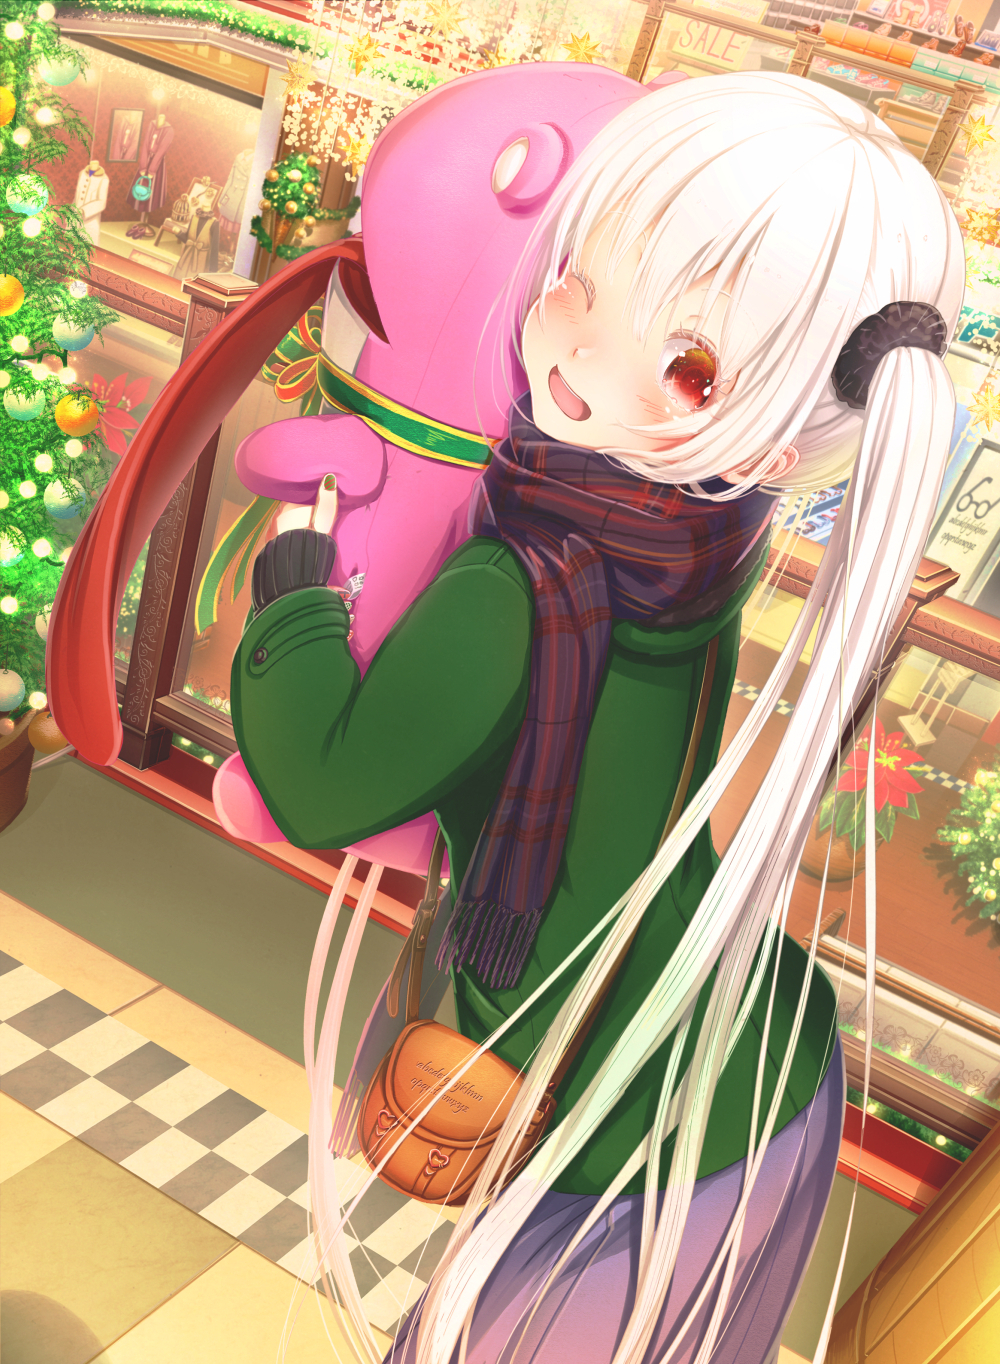 1girl ;d abo_(kawatasyunnnosukesabu) bag bangs black_scrunchie blue_scarf blush christmas christmas_ornaments christmas_tree clothes commentary_request display_case flower green_coat hair_ornament hair_scrunchie highres holding_stuffed_toy long_hair long_sleeves long_tongue looking_at_viewer mall mannequin one_eye_closed open_mouth original plaid plaid_scarf poinsettia red_eyes revision scarf scrunchie shoulder_bag skirt sleeves_past_wrists smile solo striped_nails tongue tongue_out very_long_hair white_hair